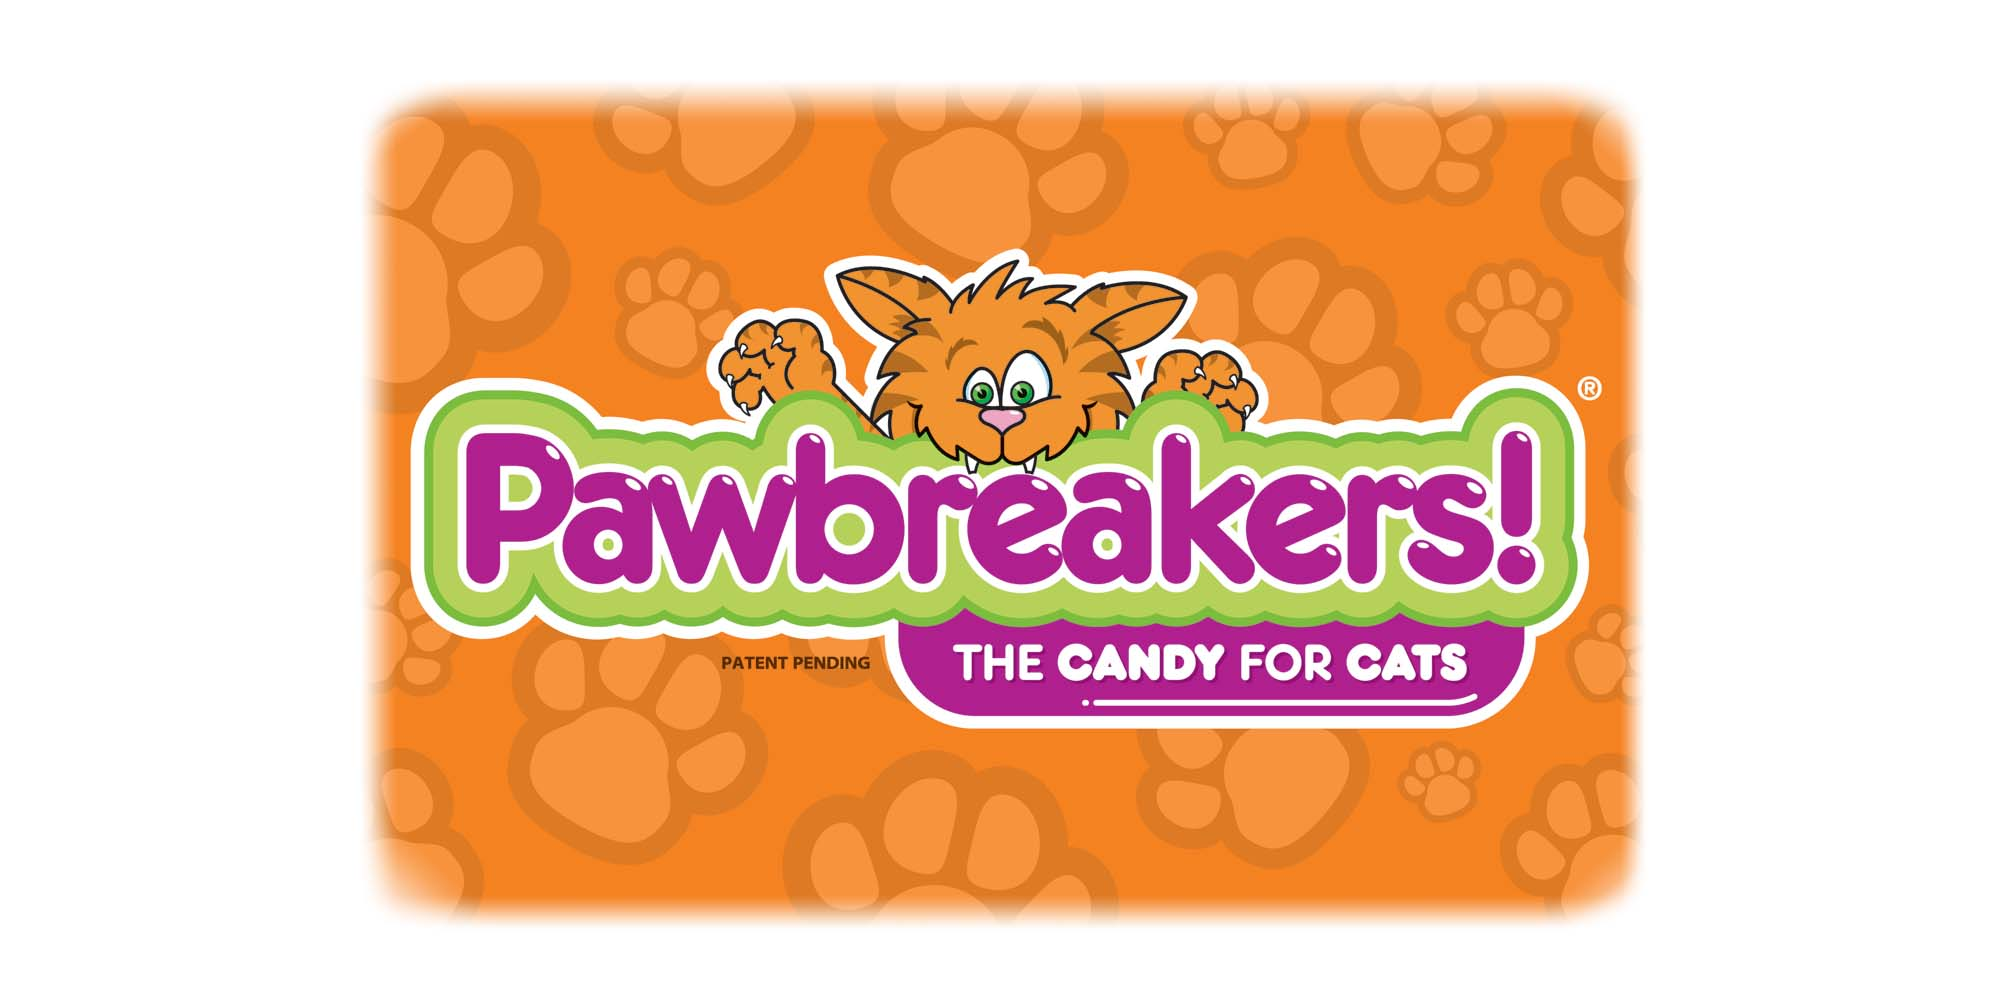 Pawbreakers! Catnip Candy